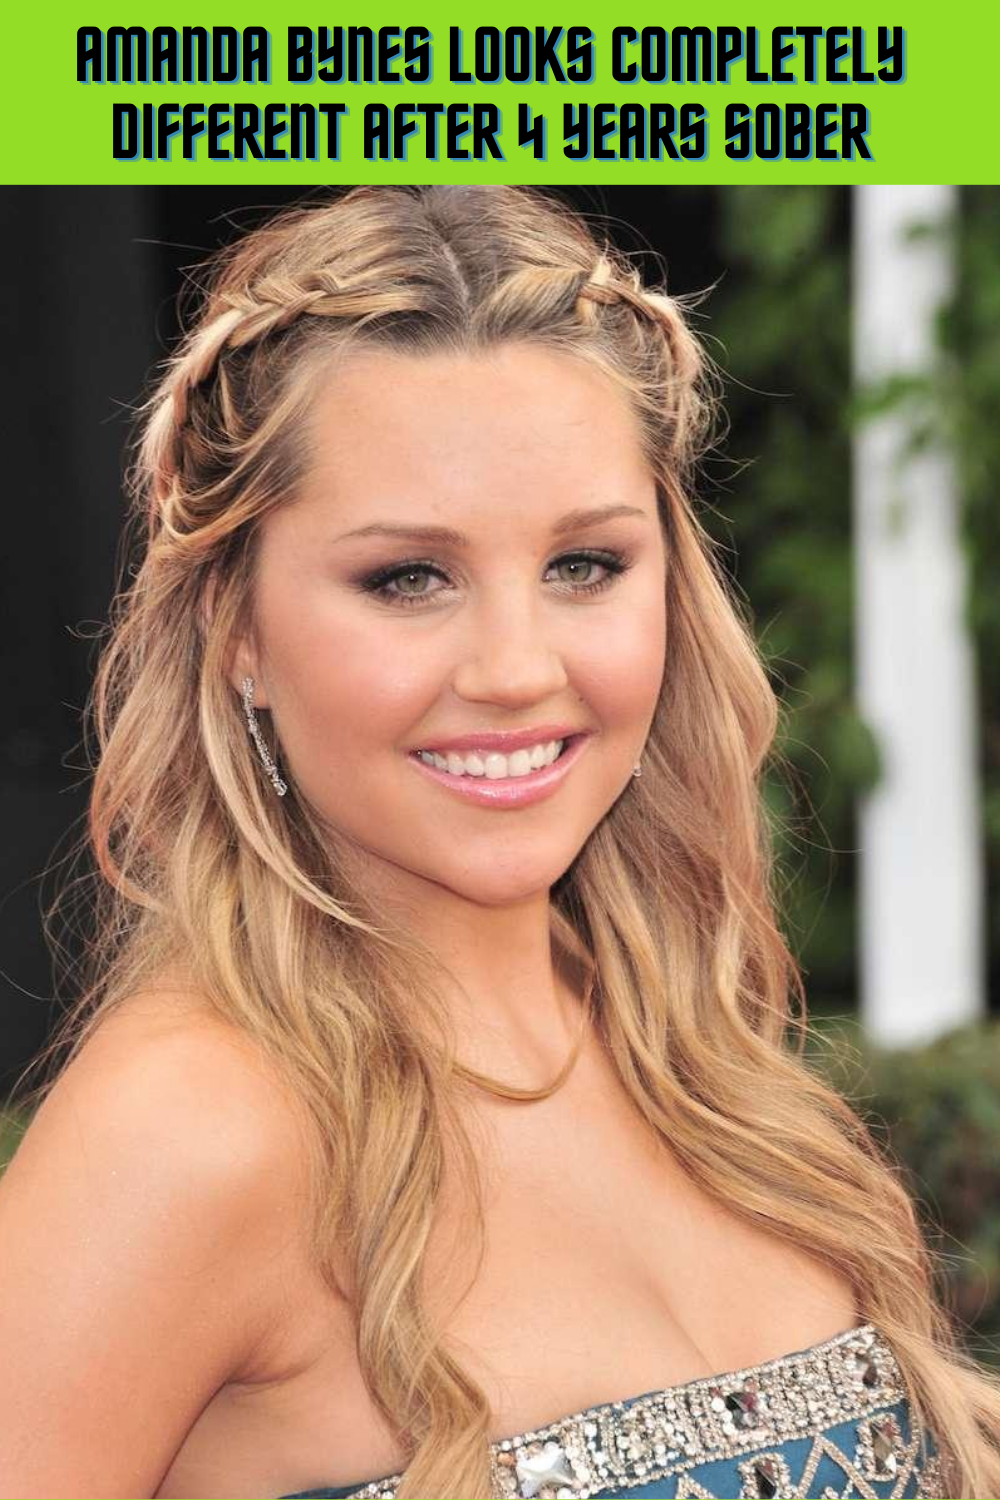 AMANDA BYNES LOOKS COMPLETELY DIFFERENT AFTER 4 YEARS